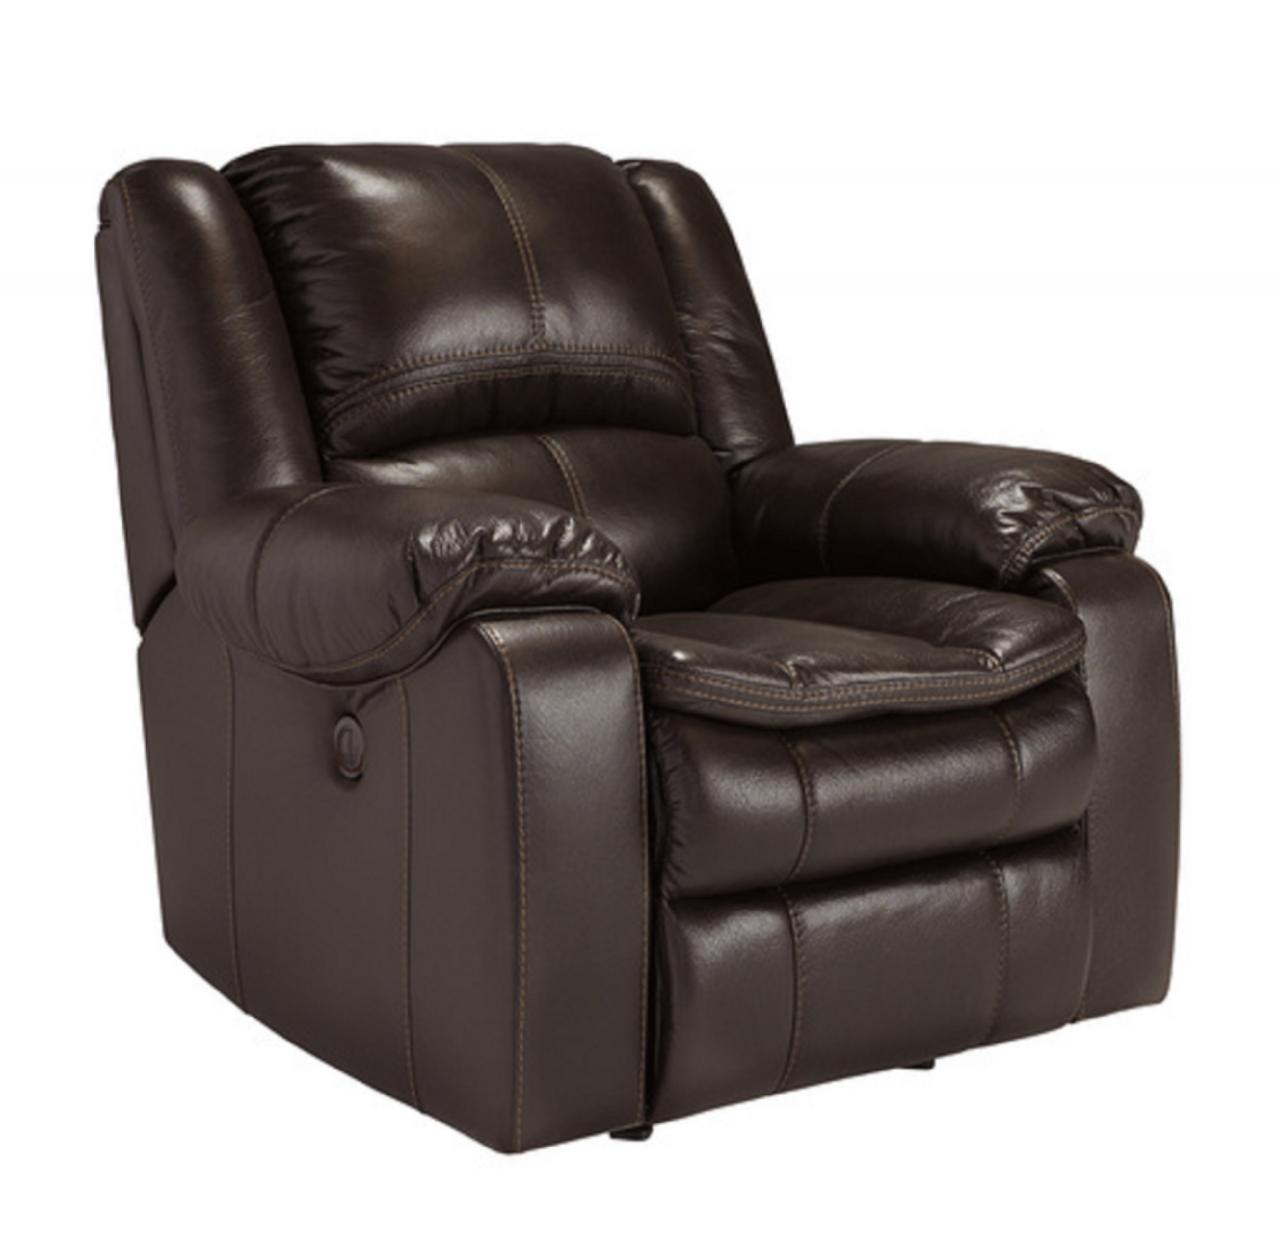 Today Furniture & Mattress Outlet ALL LIVING ROOM FURNITURE